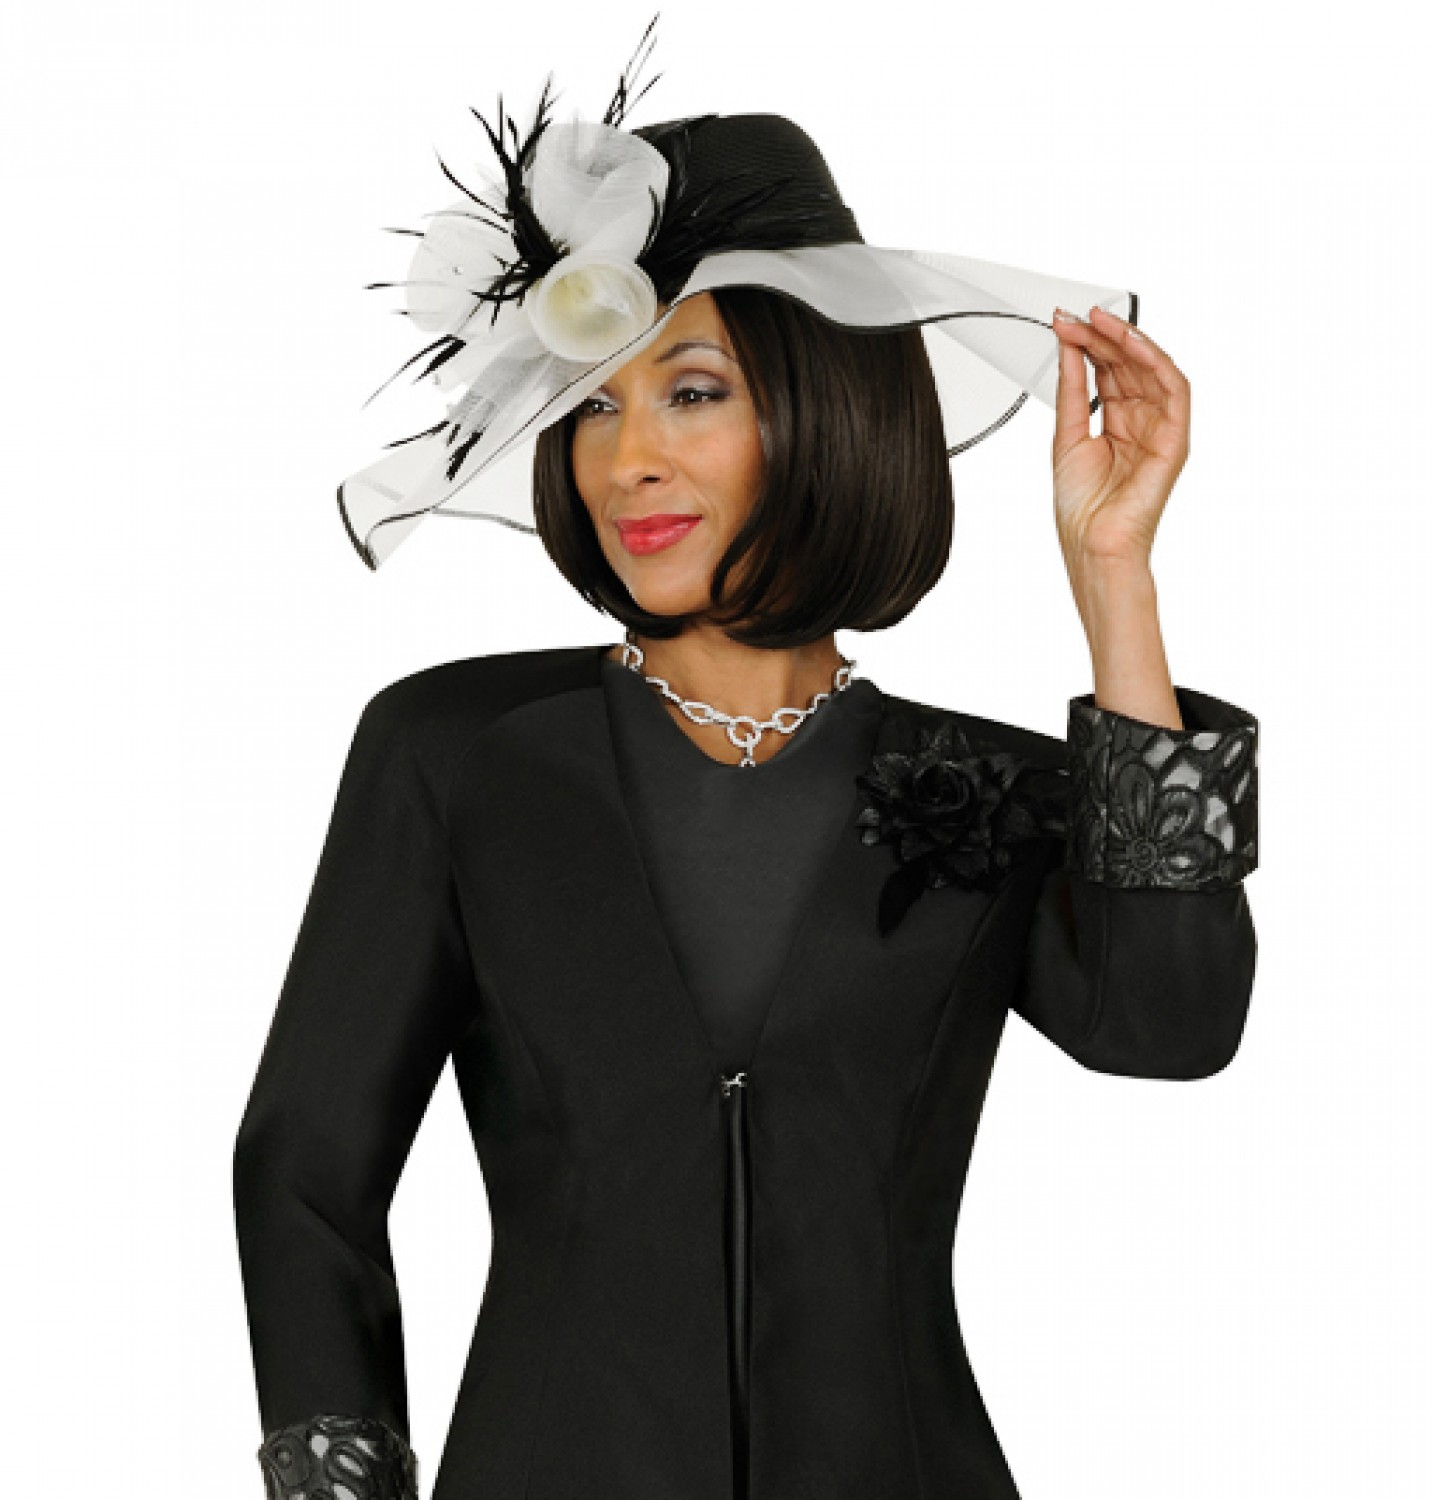 Black Women Church Suits and Hats